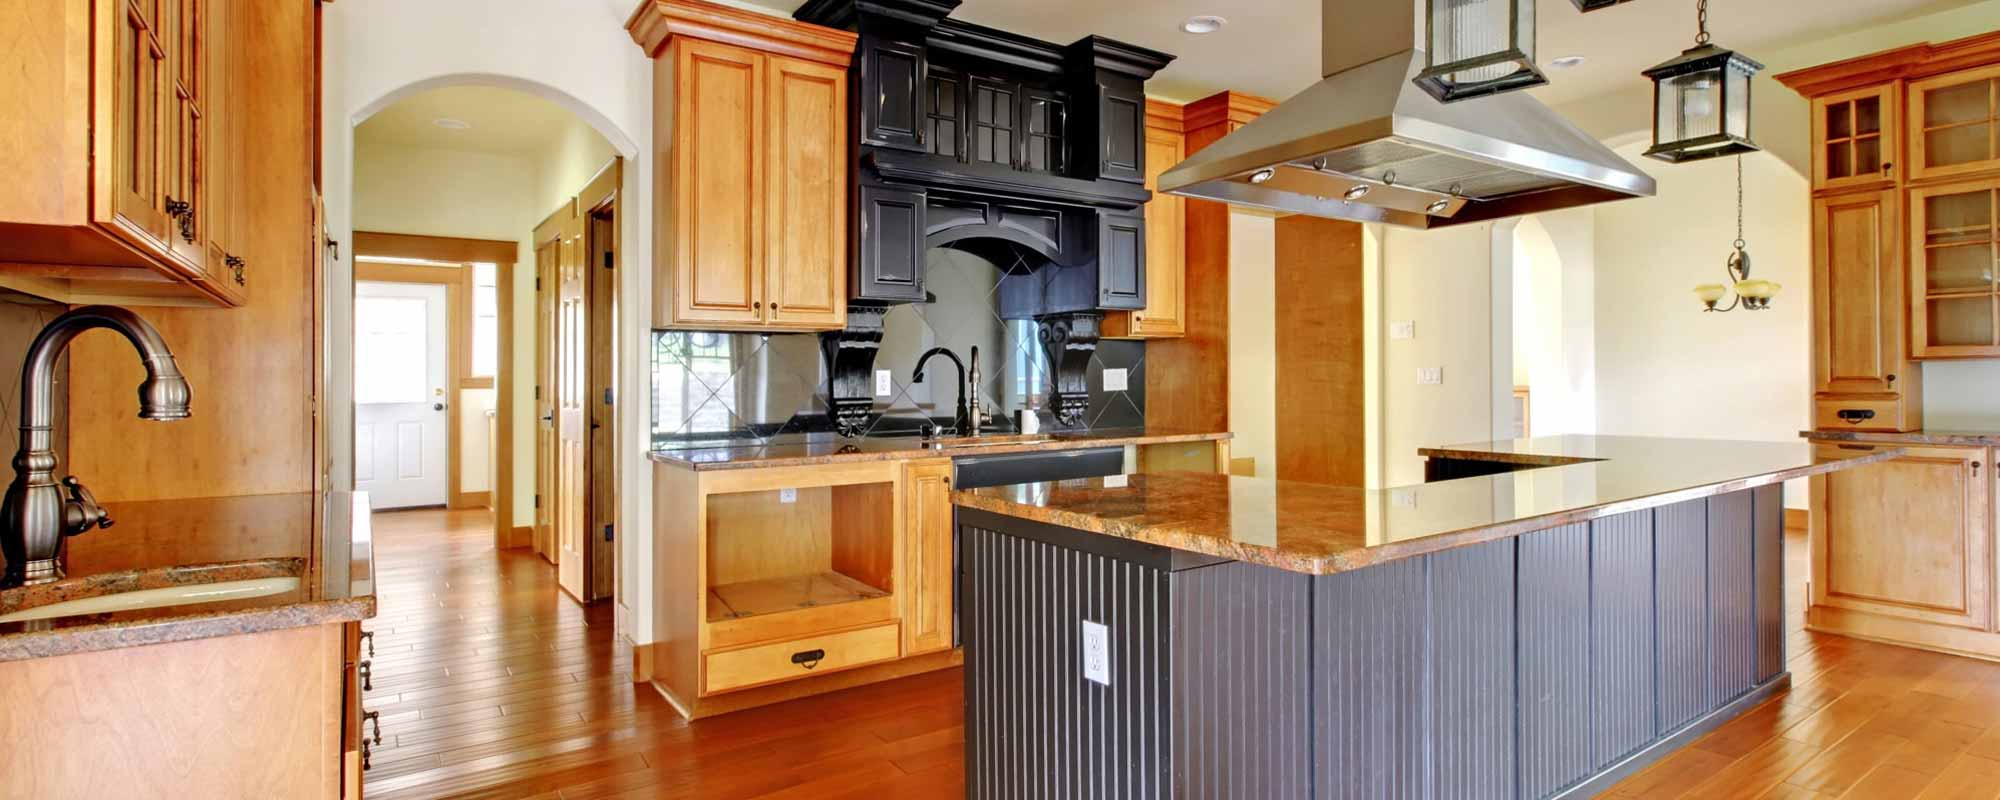 Comstock Park Kitchen Remodeling